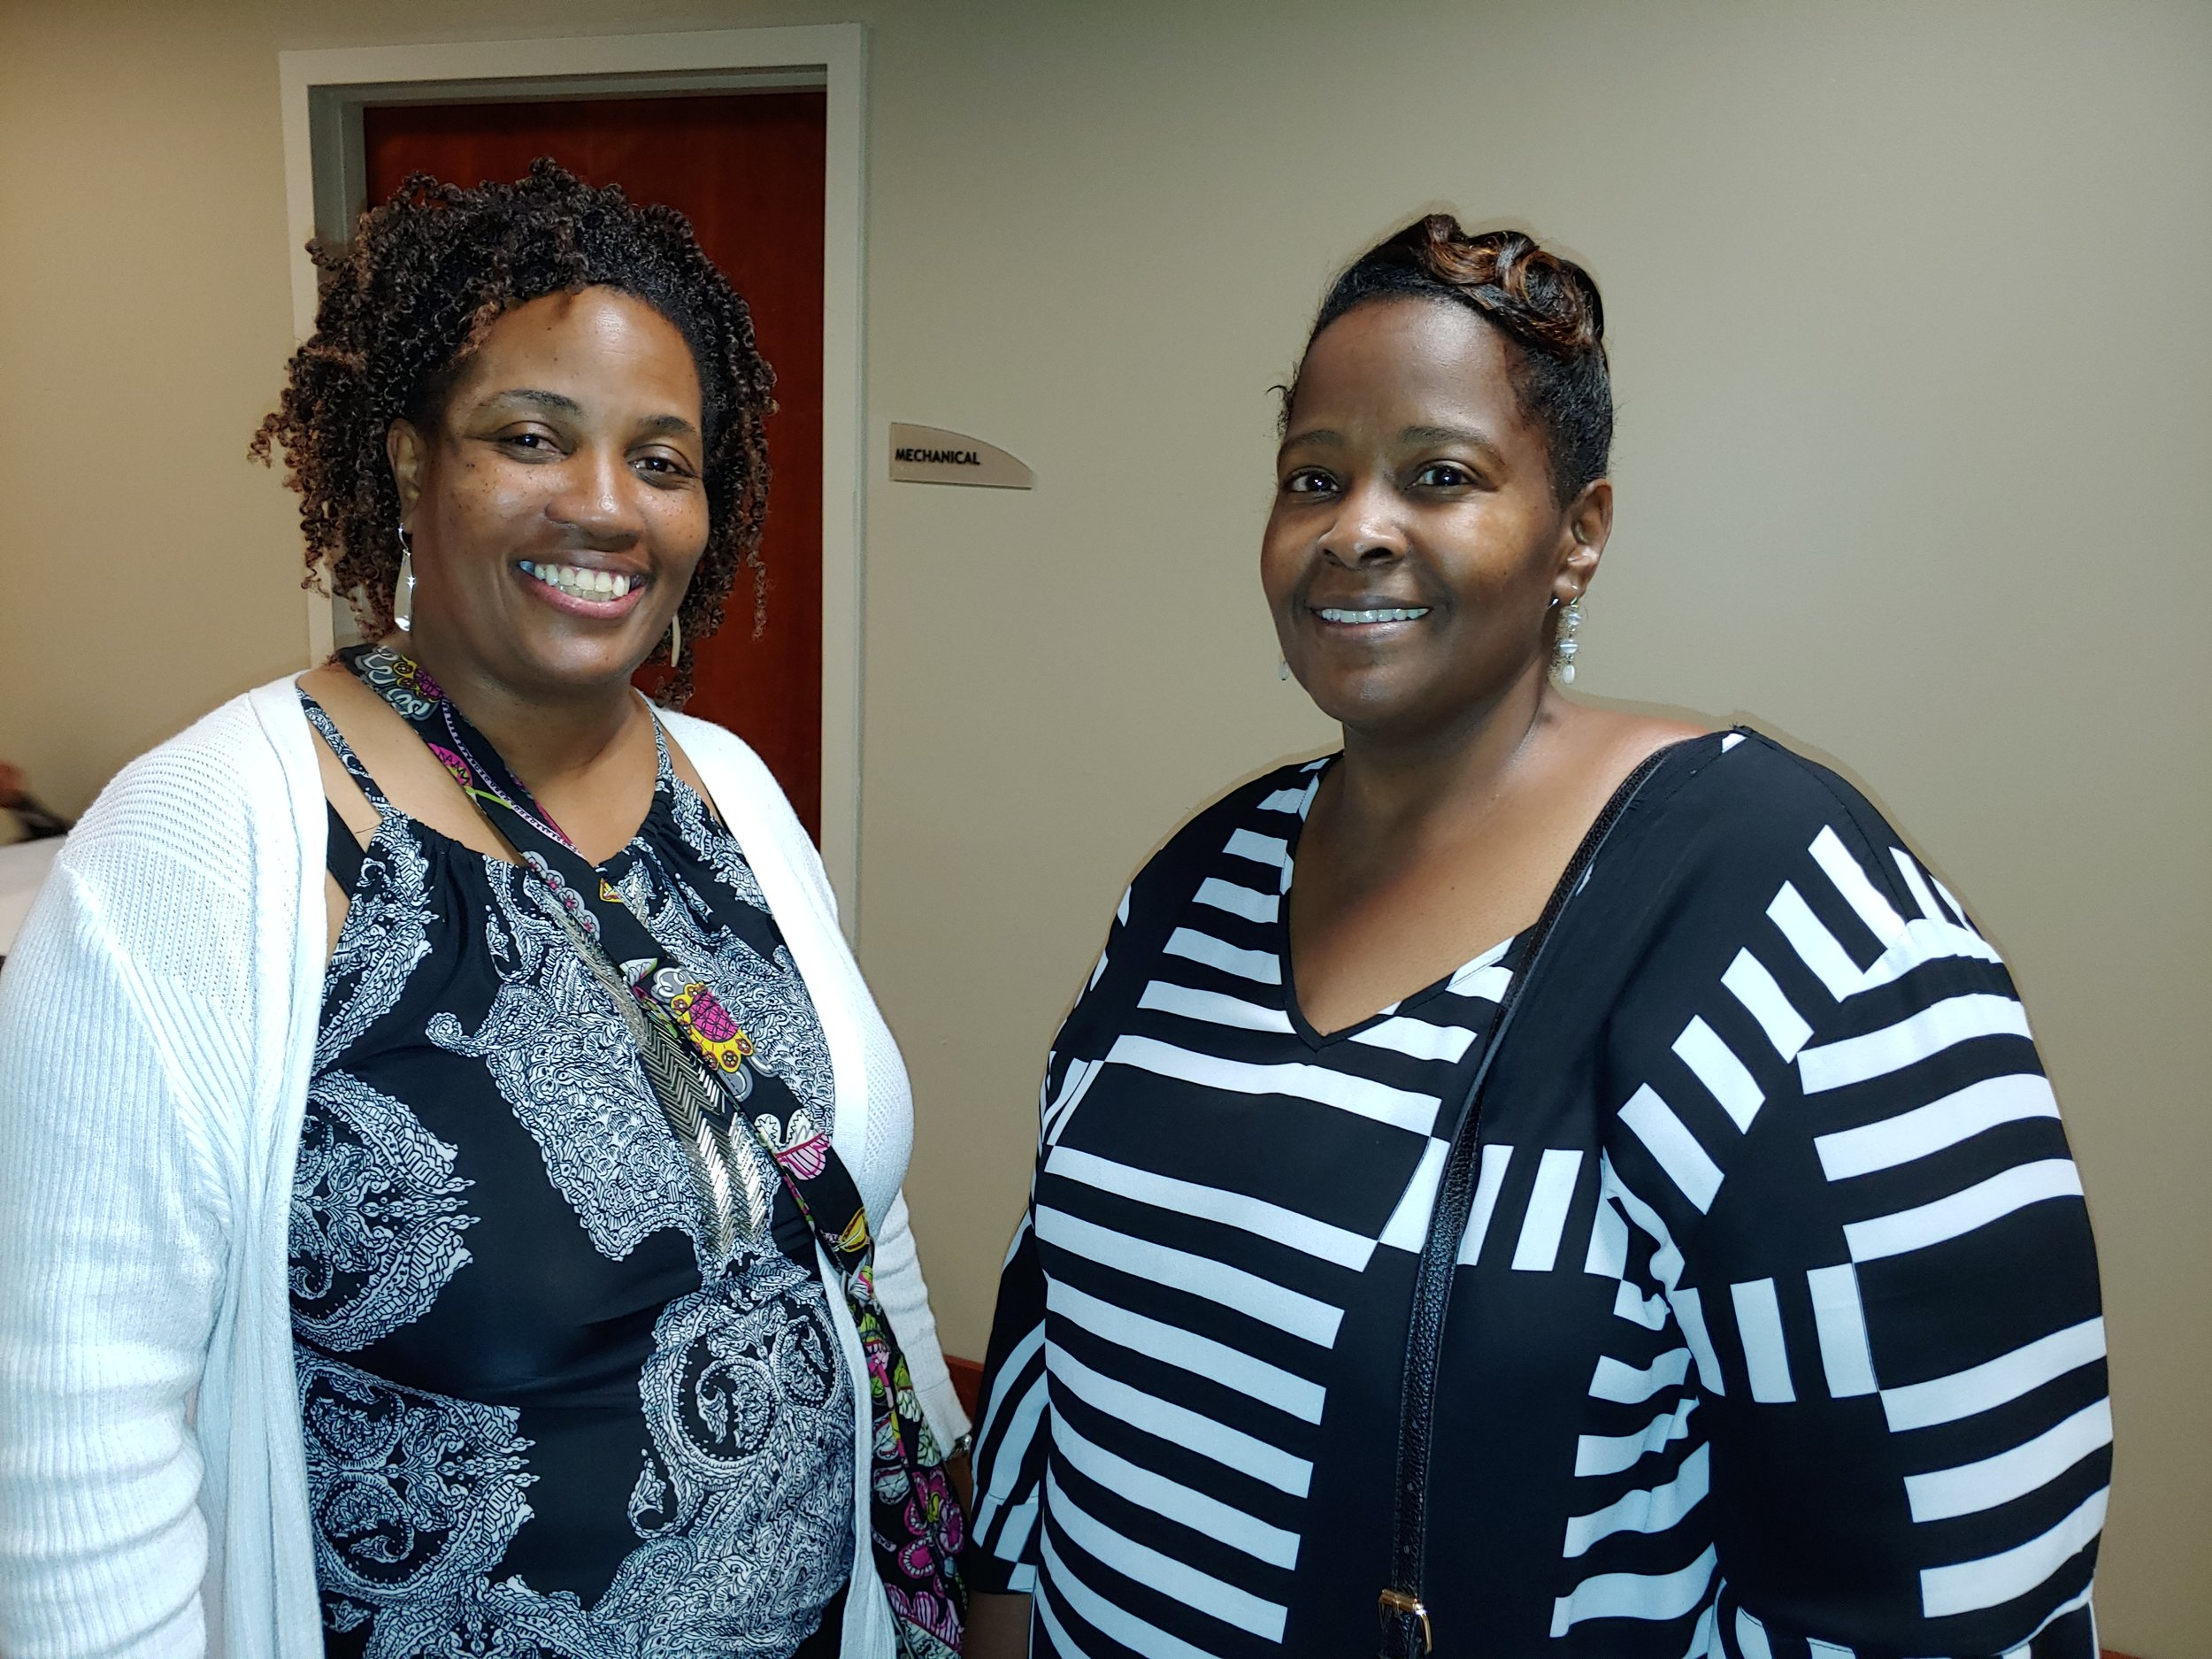 Bridgett Smith (left) and Darlene Gamble of the FBCG Legal Ministry. PHOTO: RAOUL DENNIS PRINCE GEORGE'S SUITE MAGAZINE & MEDIA